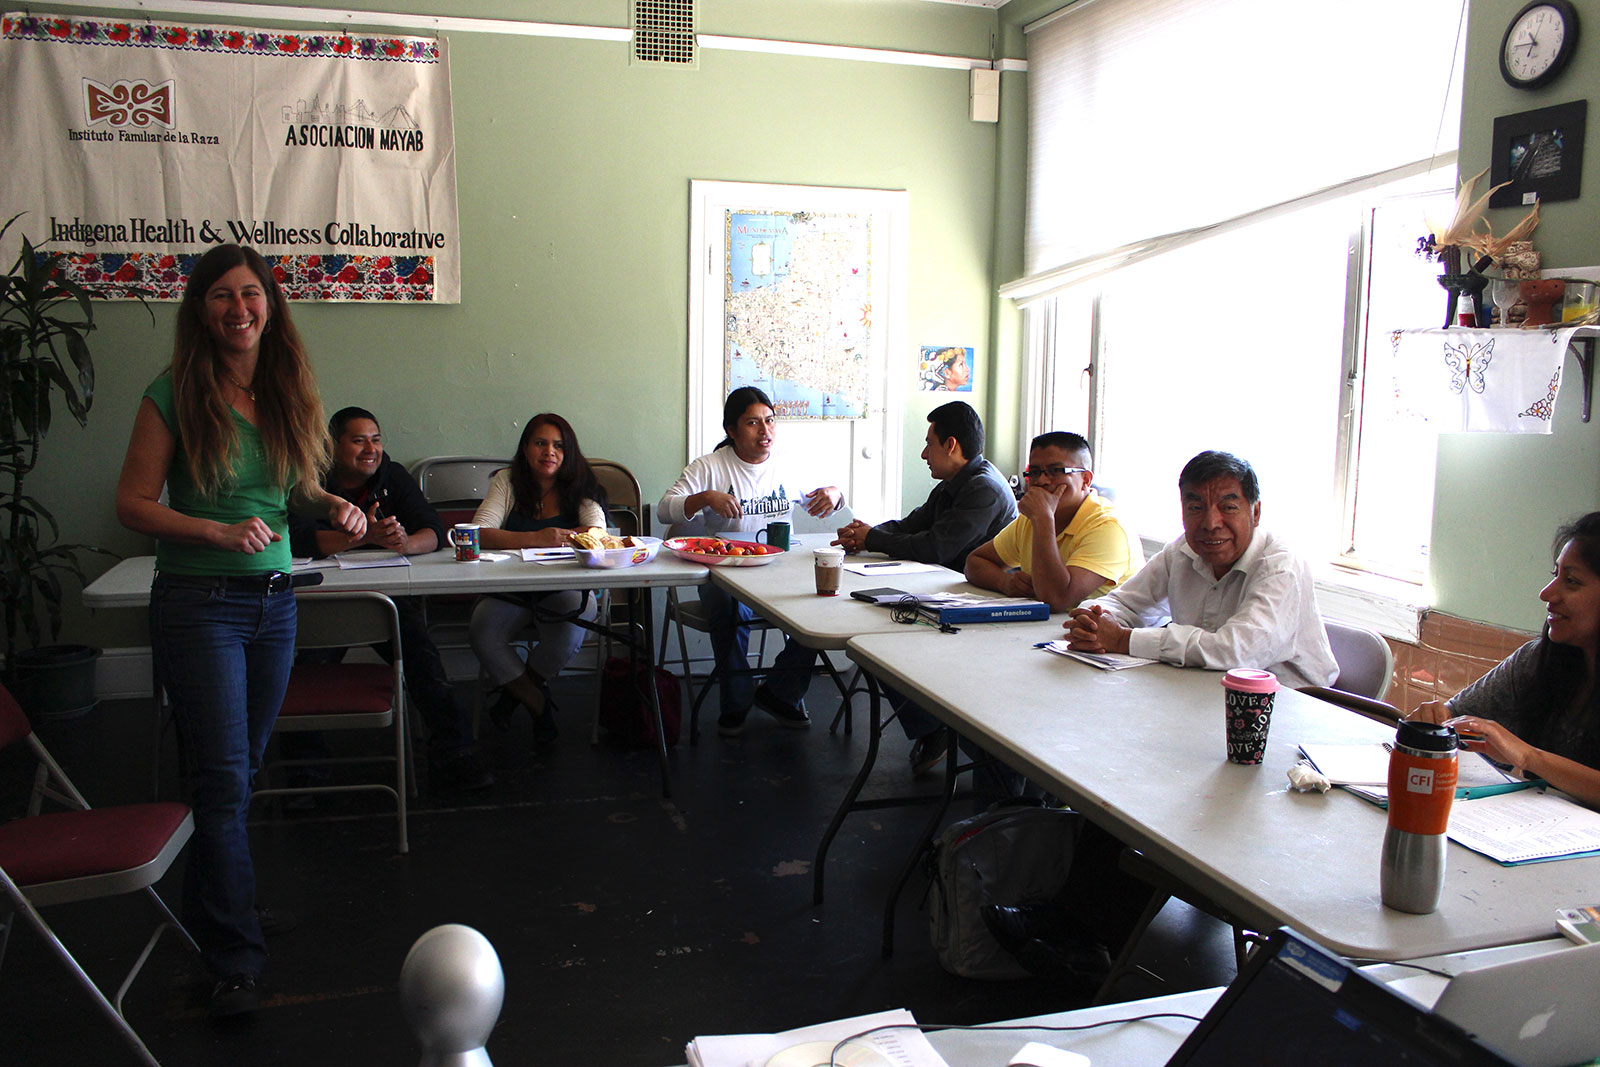 The class at Asociation Mayab in the Mission is a mix of different ages and cultural backgrounds. Photo by Laia Gordi.